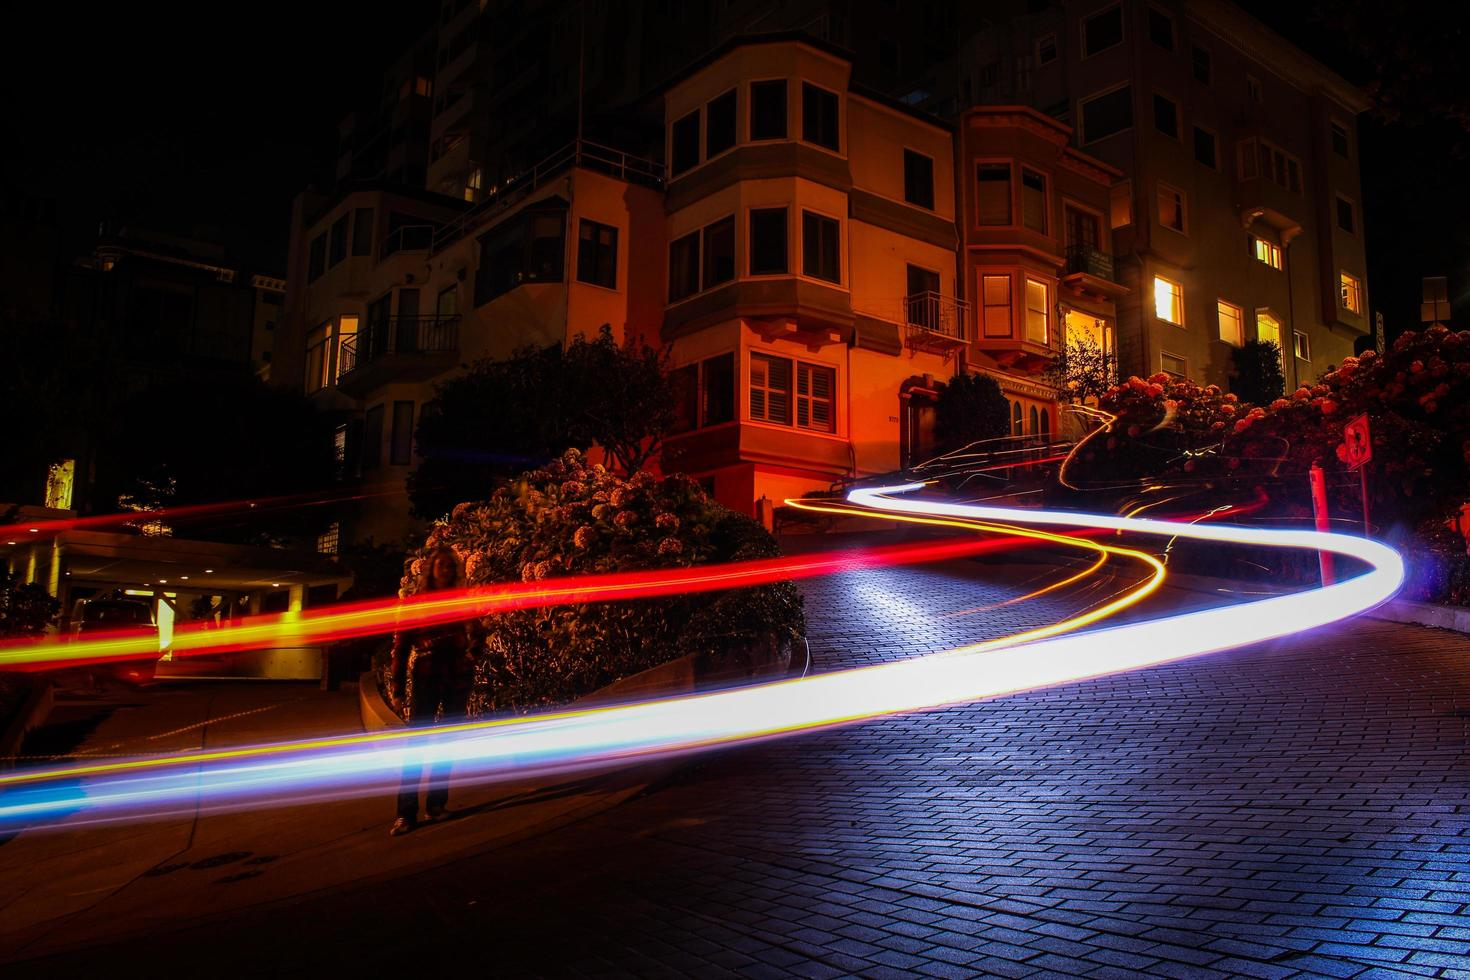 San Francisco, California, 2020 - Time-lapse of car lights on a street photo